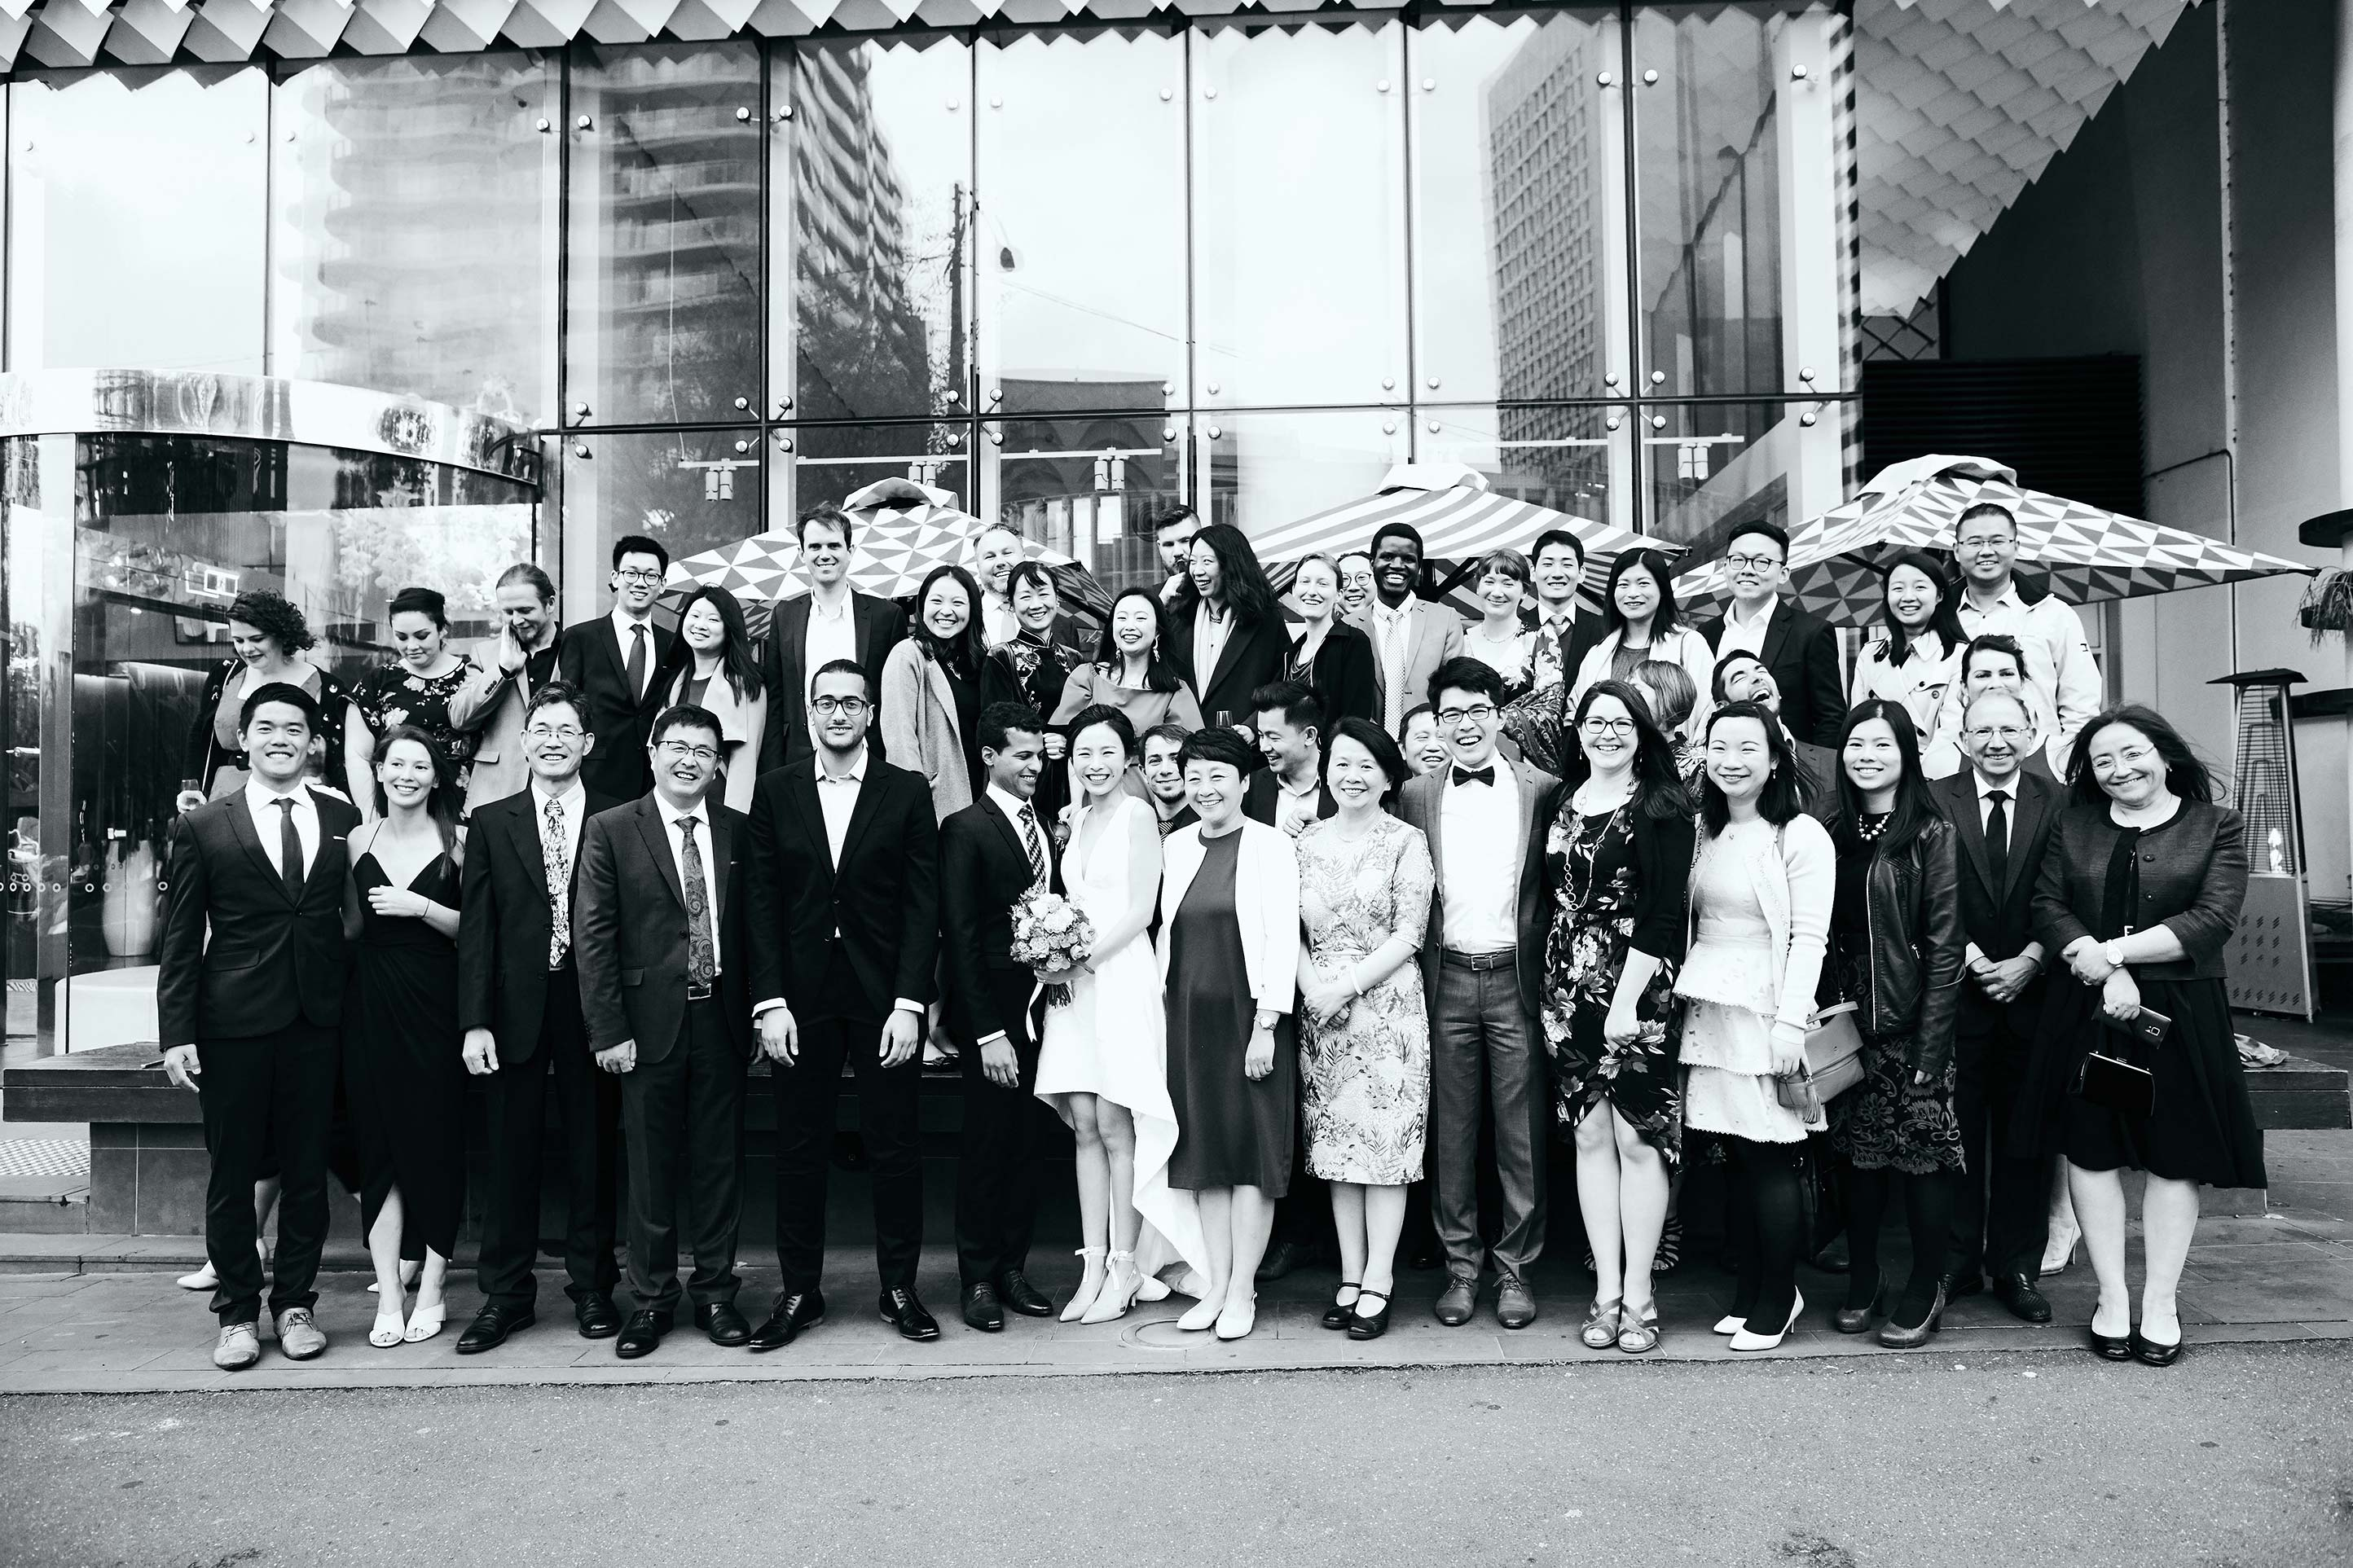 Melbourne-Wedding-Photographer-Kettle-Black-ceremony-group-shot